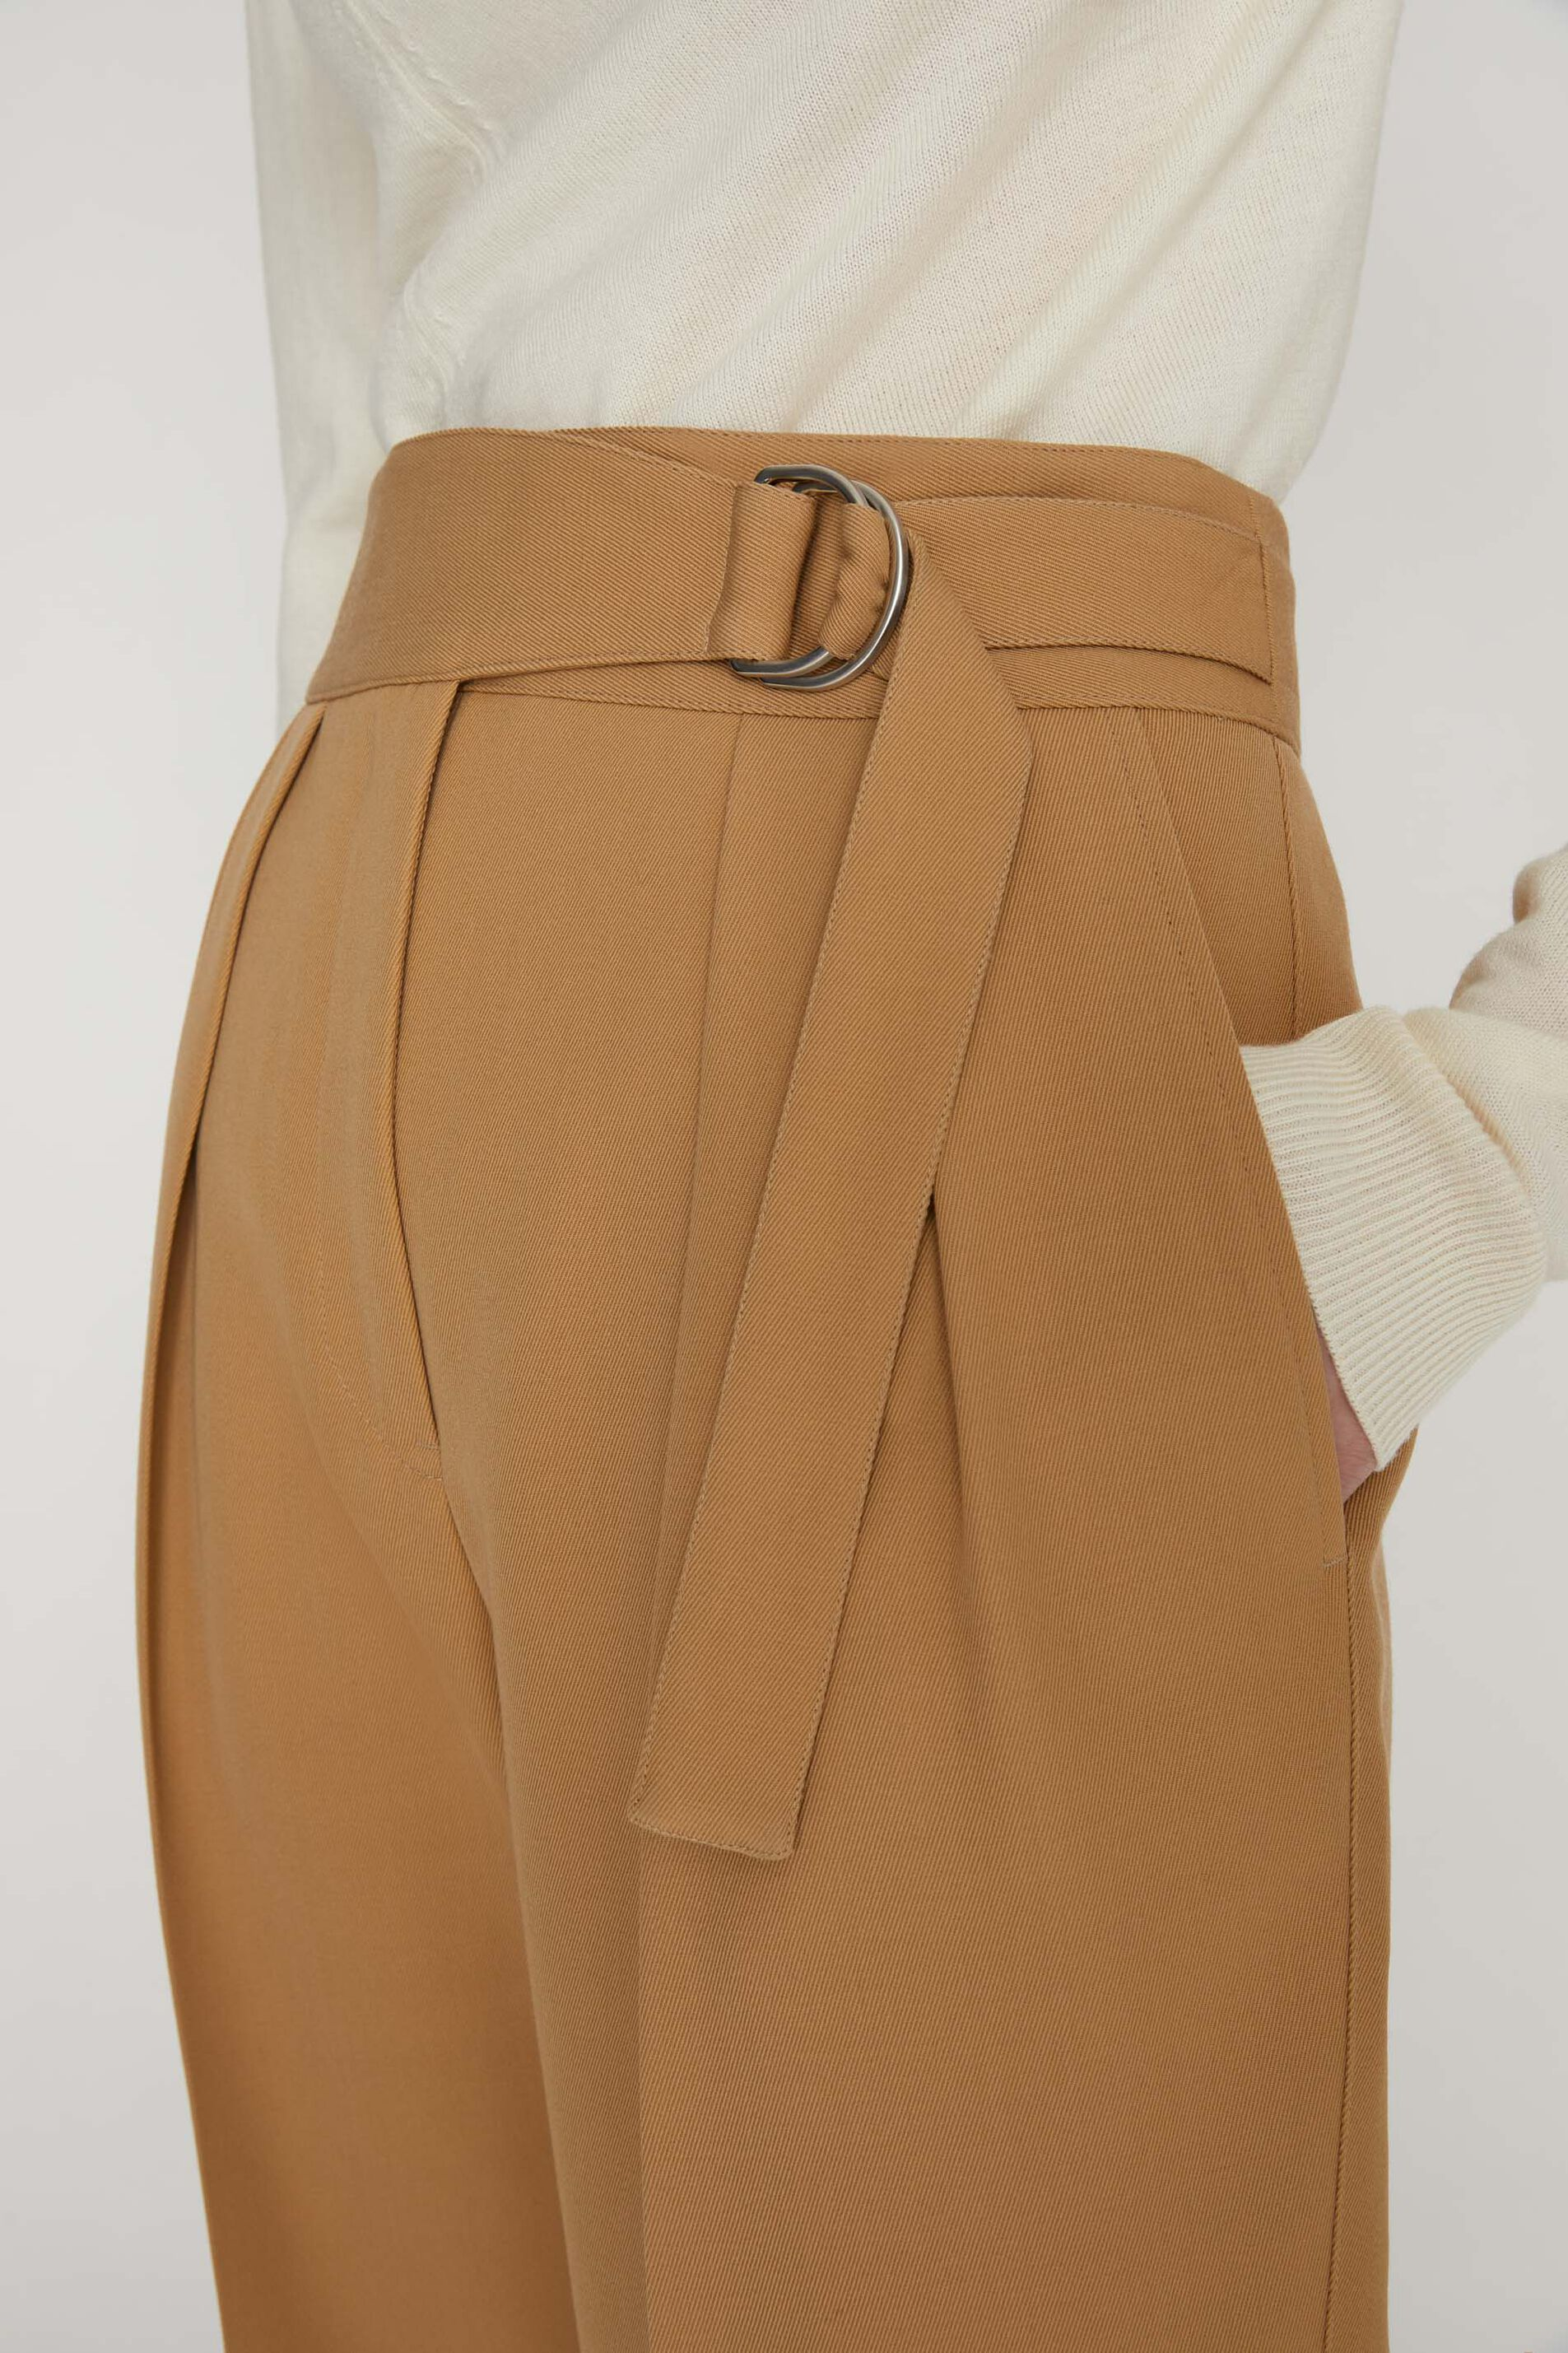 Trousers, dark beige, large